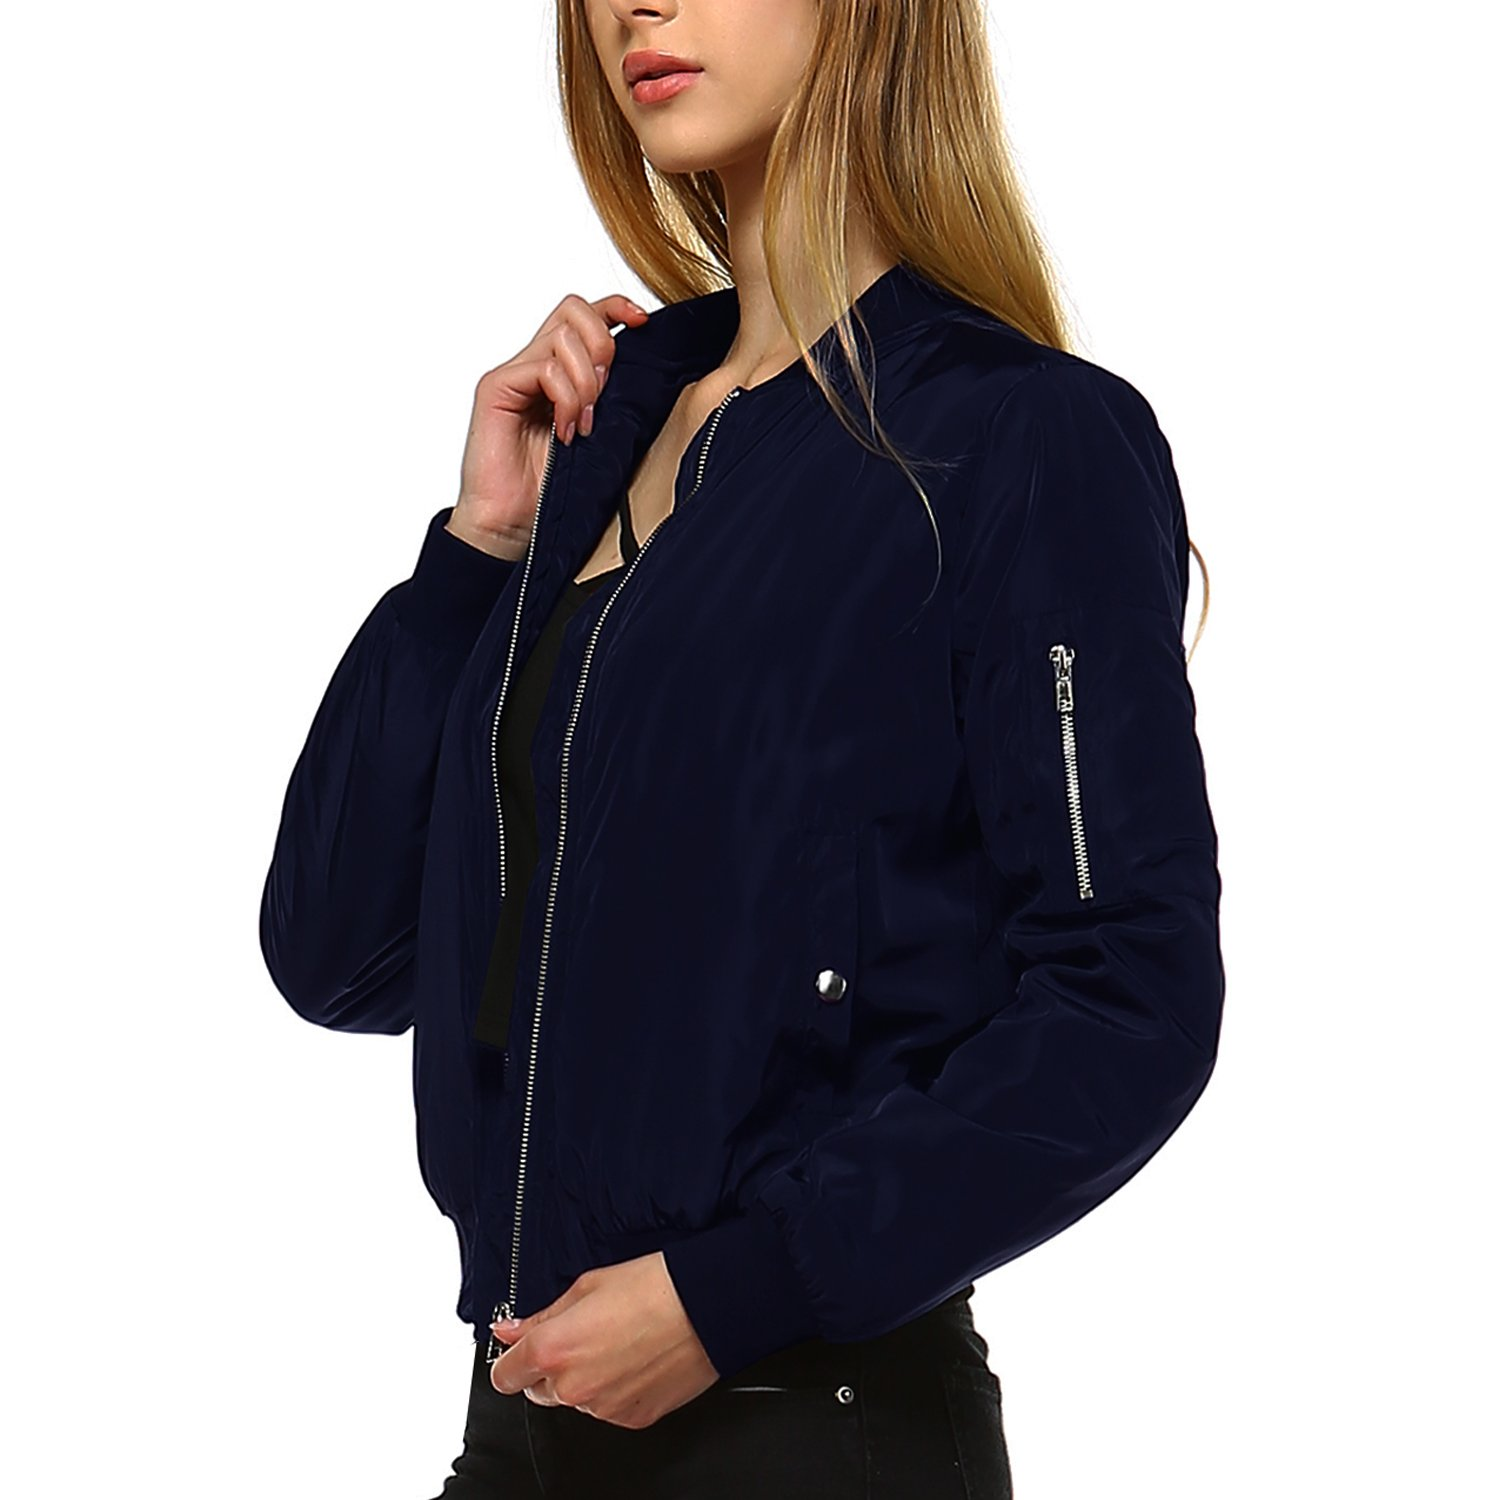 Fashionazzle Women's Solid Classic Zip Up Quilted Short Bomber Jacket Padded Coat (Medium, BMJ01-Navy)